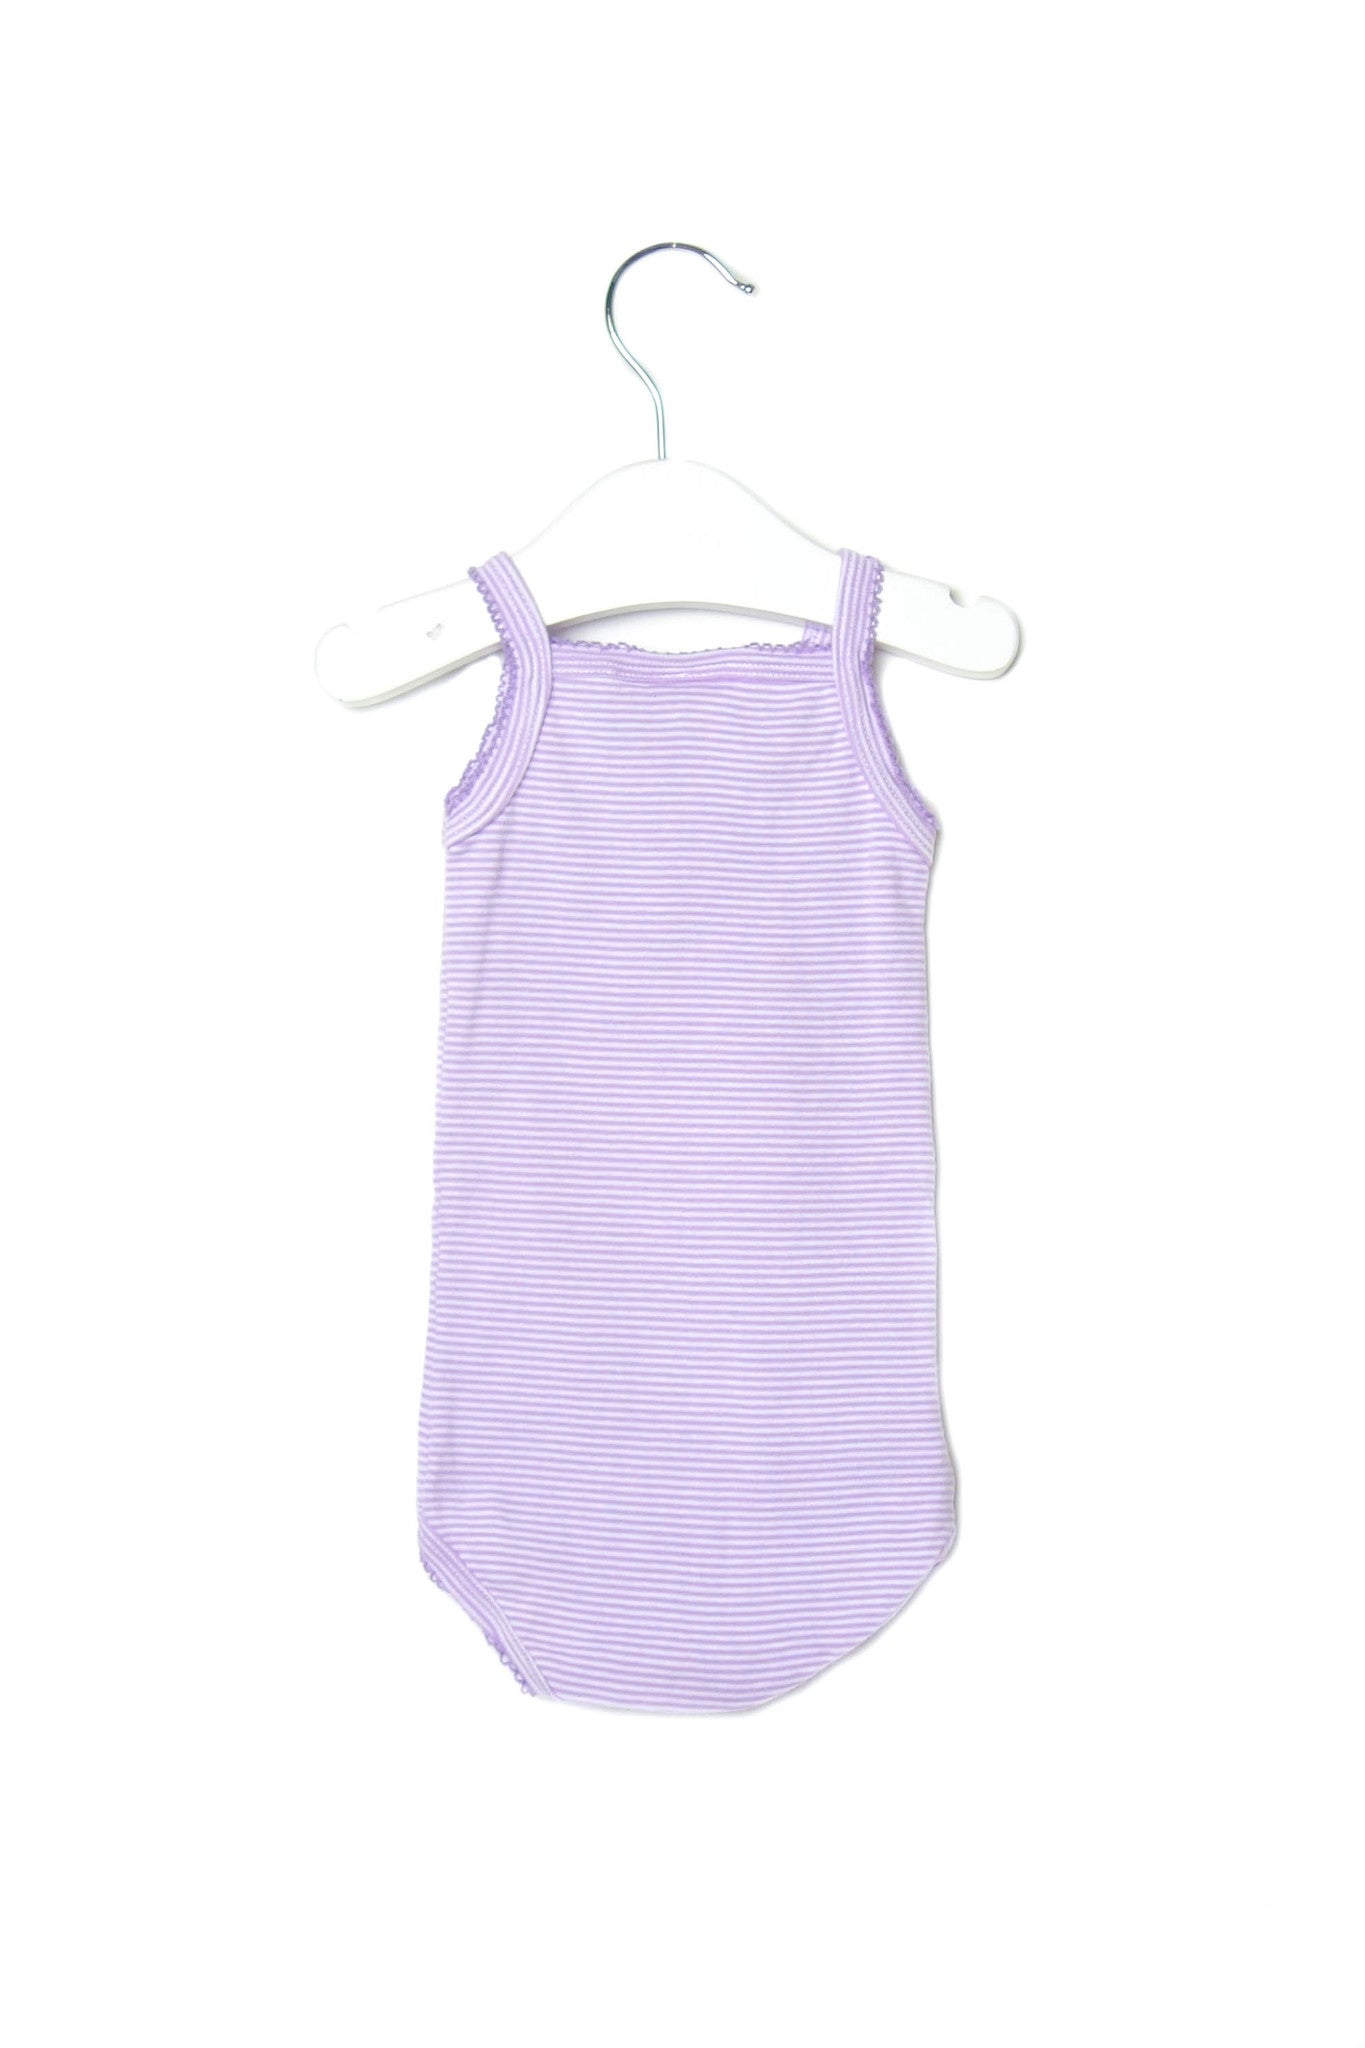 10001455~Bodysuit 6M, Petit Bateau at Retykle - Online Baby & Kids Clothing Up to 90% Off